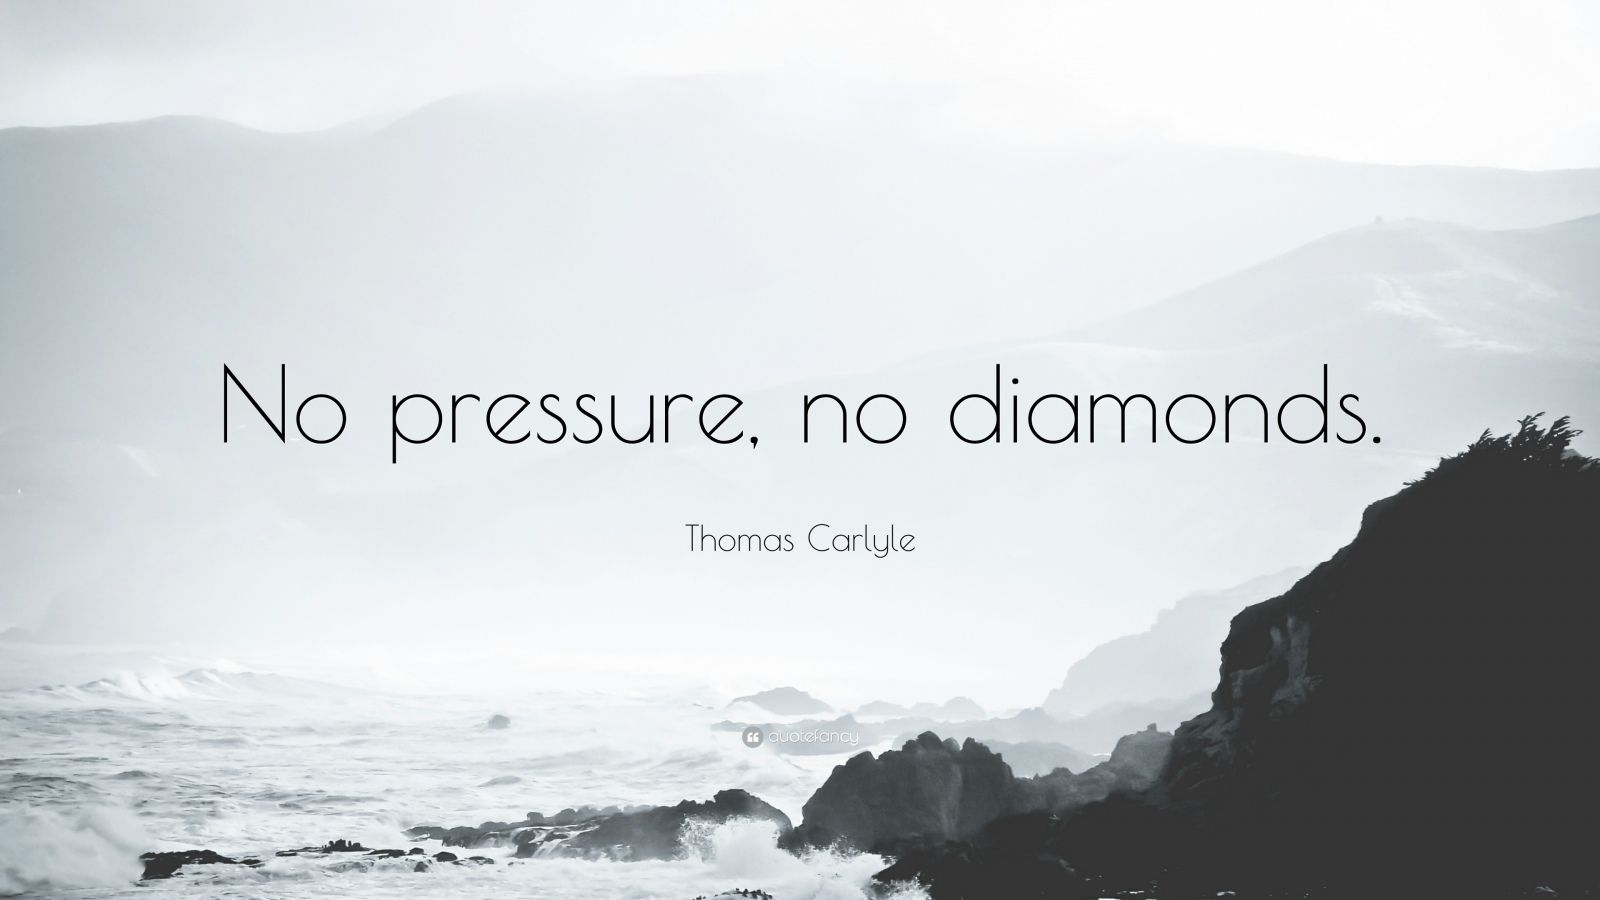 Thomas Carlyle Quotes (100 wallpapers)   Quotefancy